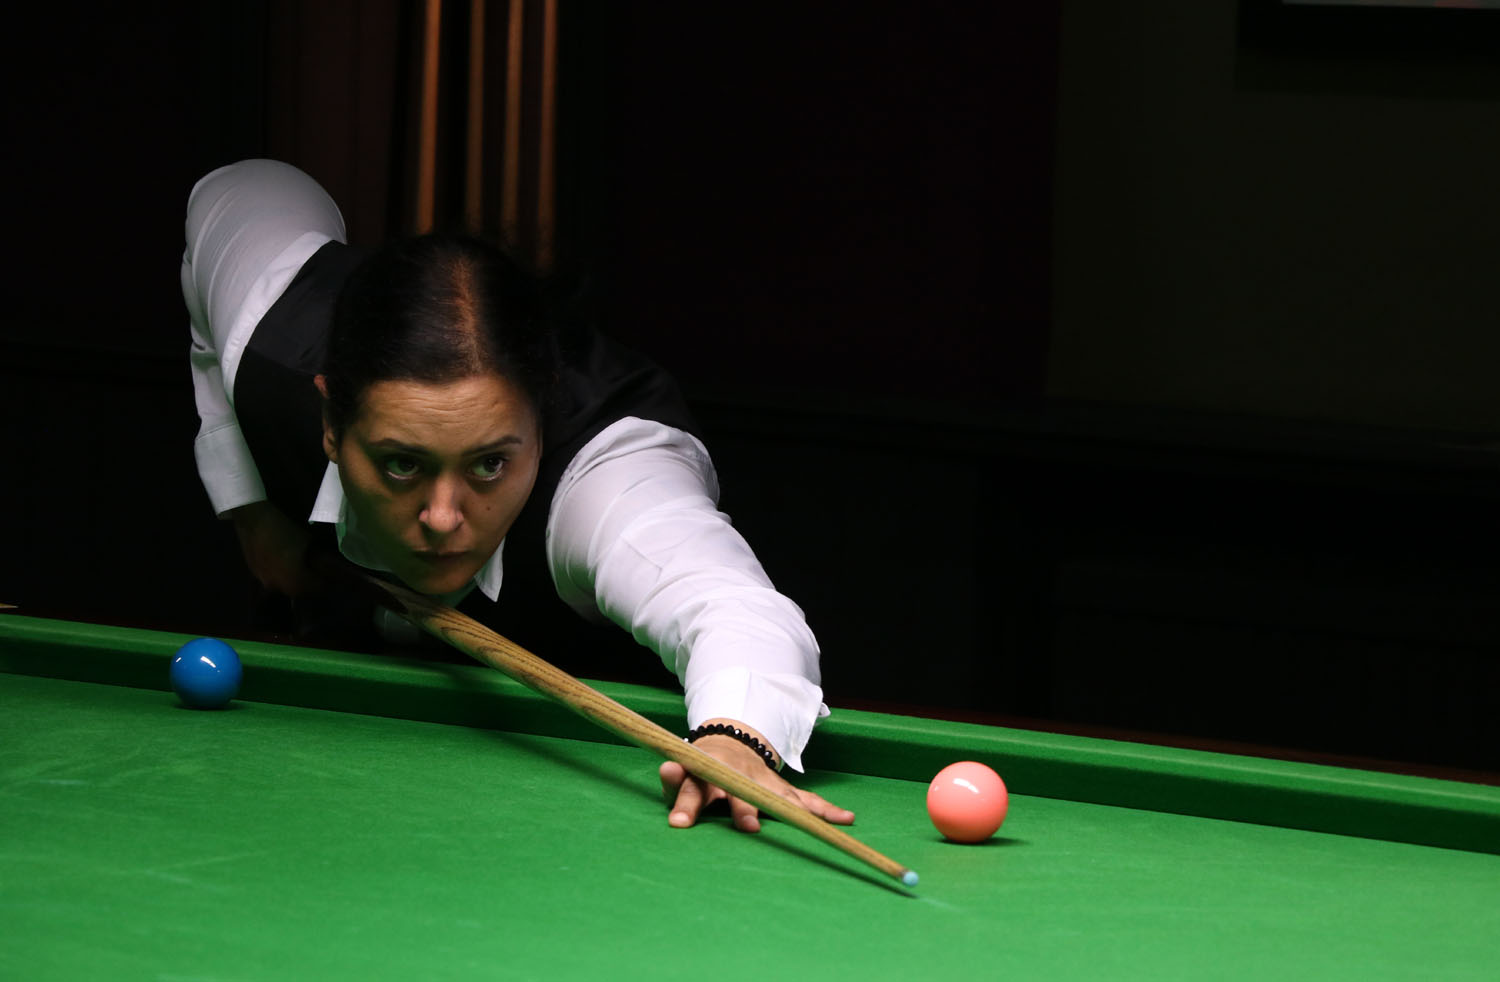 Sharon Kaur playing snooker